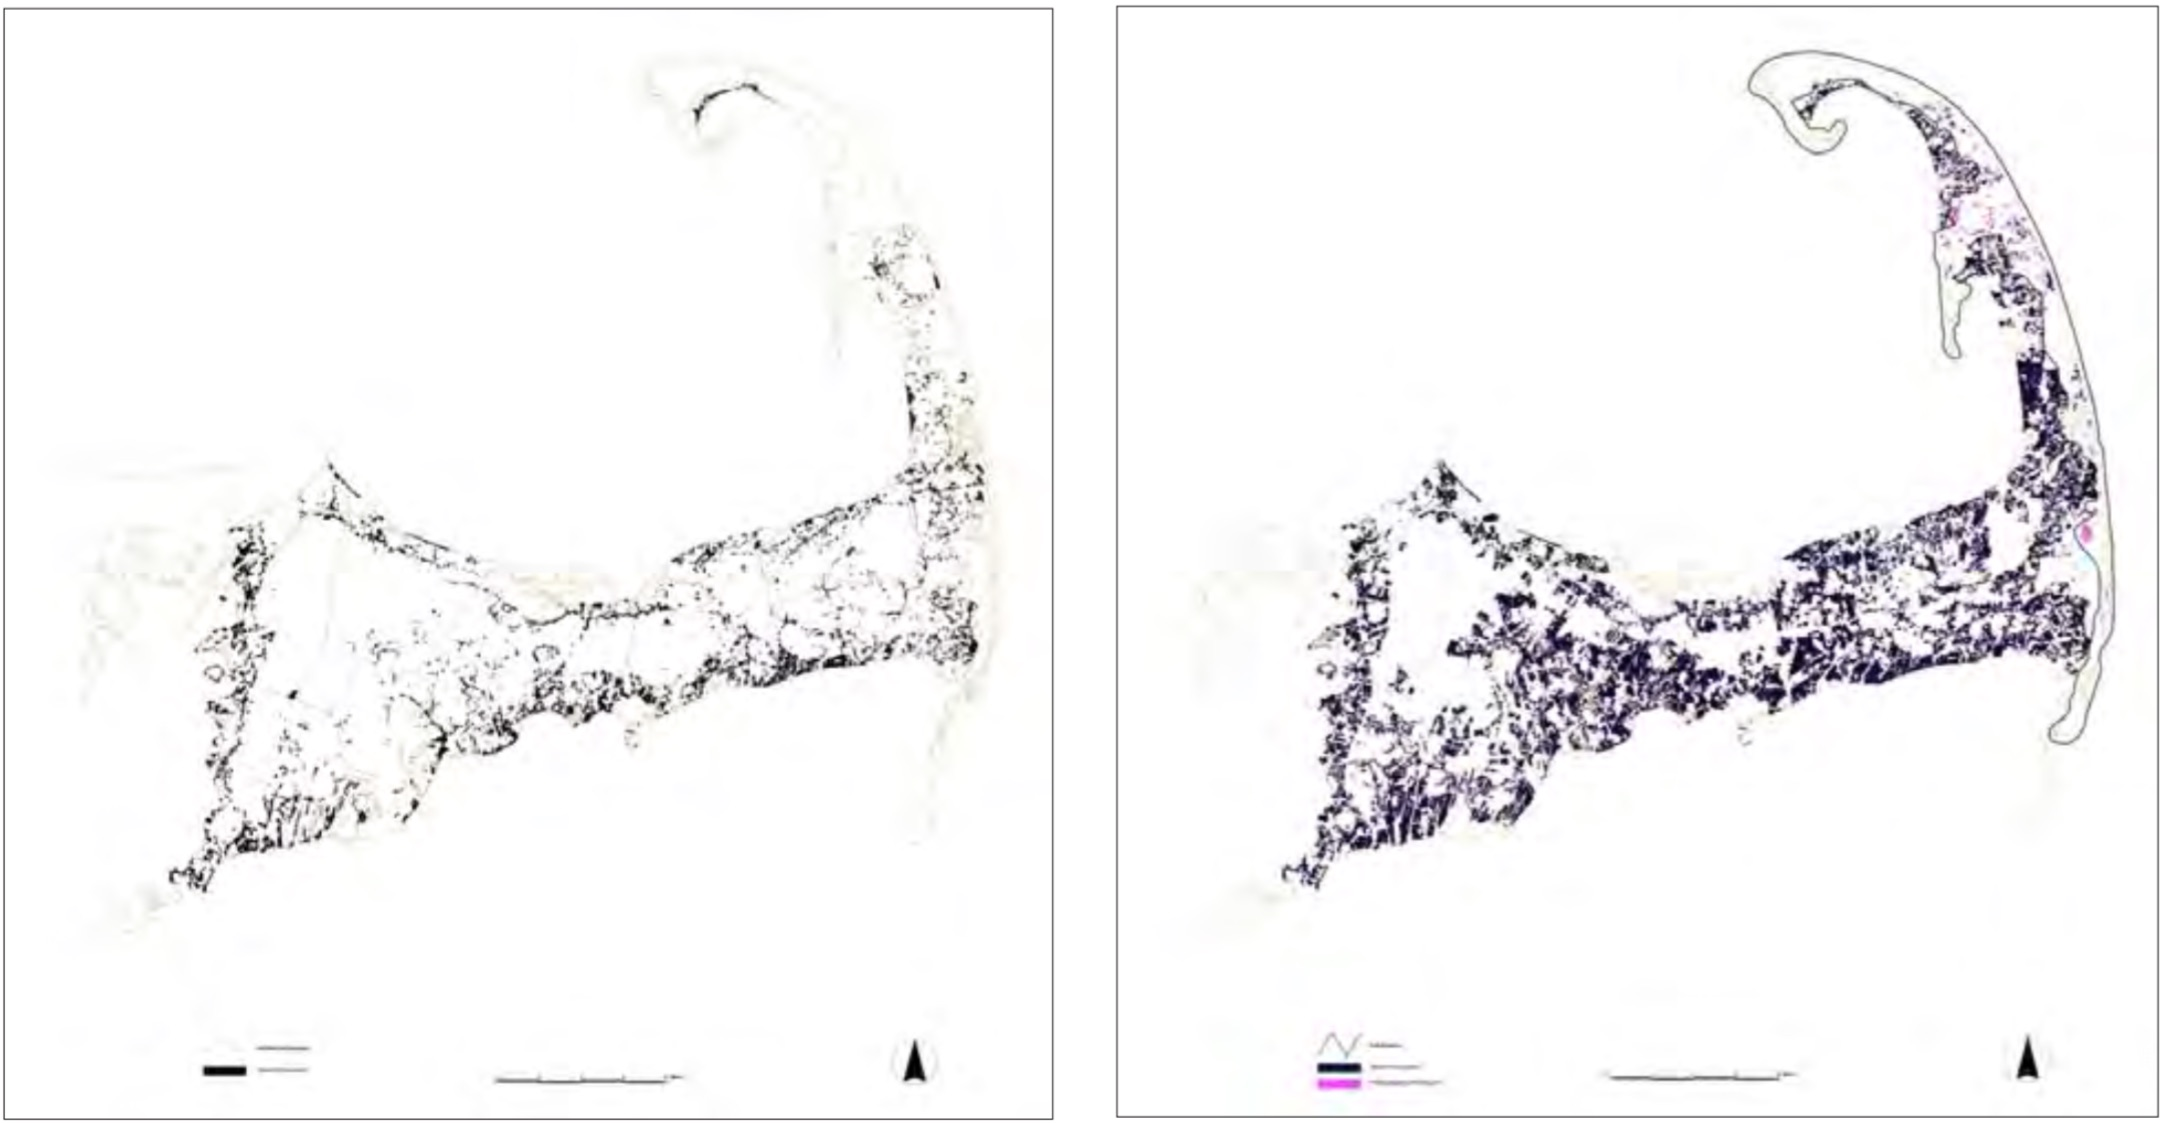 Residential development on Cape Cod, 1951 and 1999 (Source: UMass/Mass GIS, 2004)